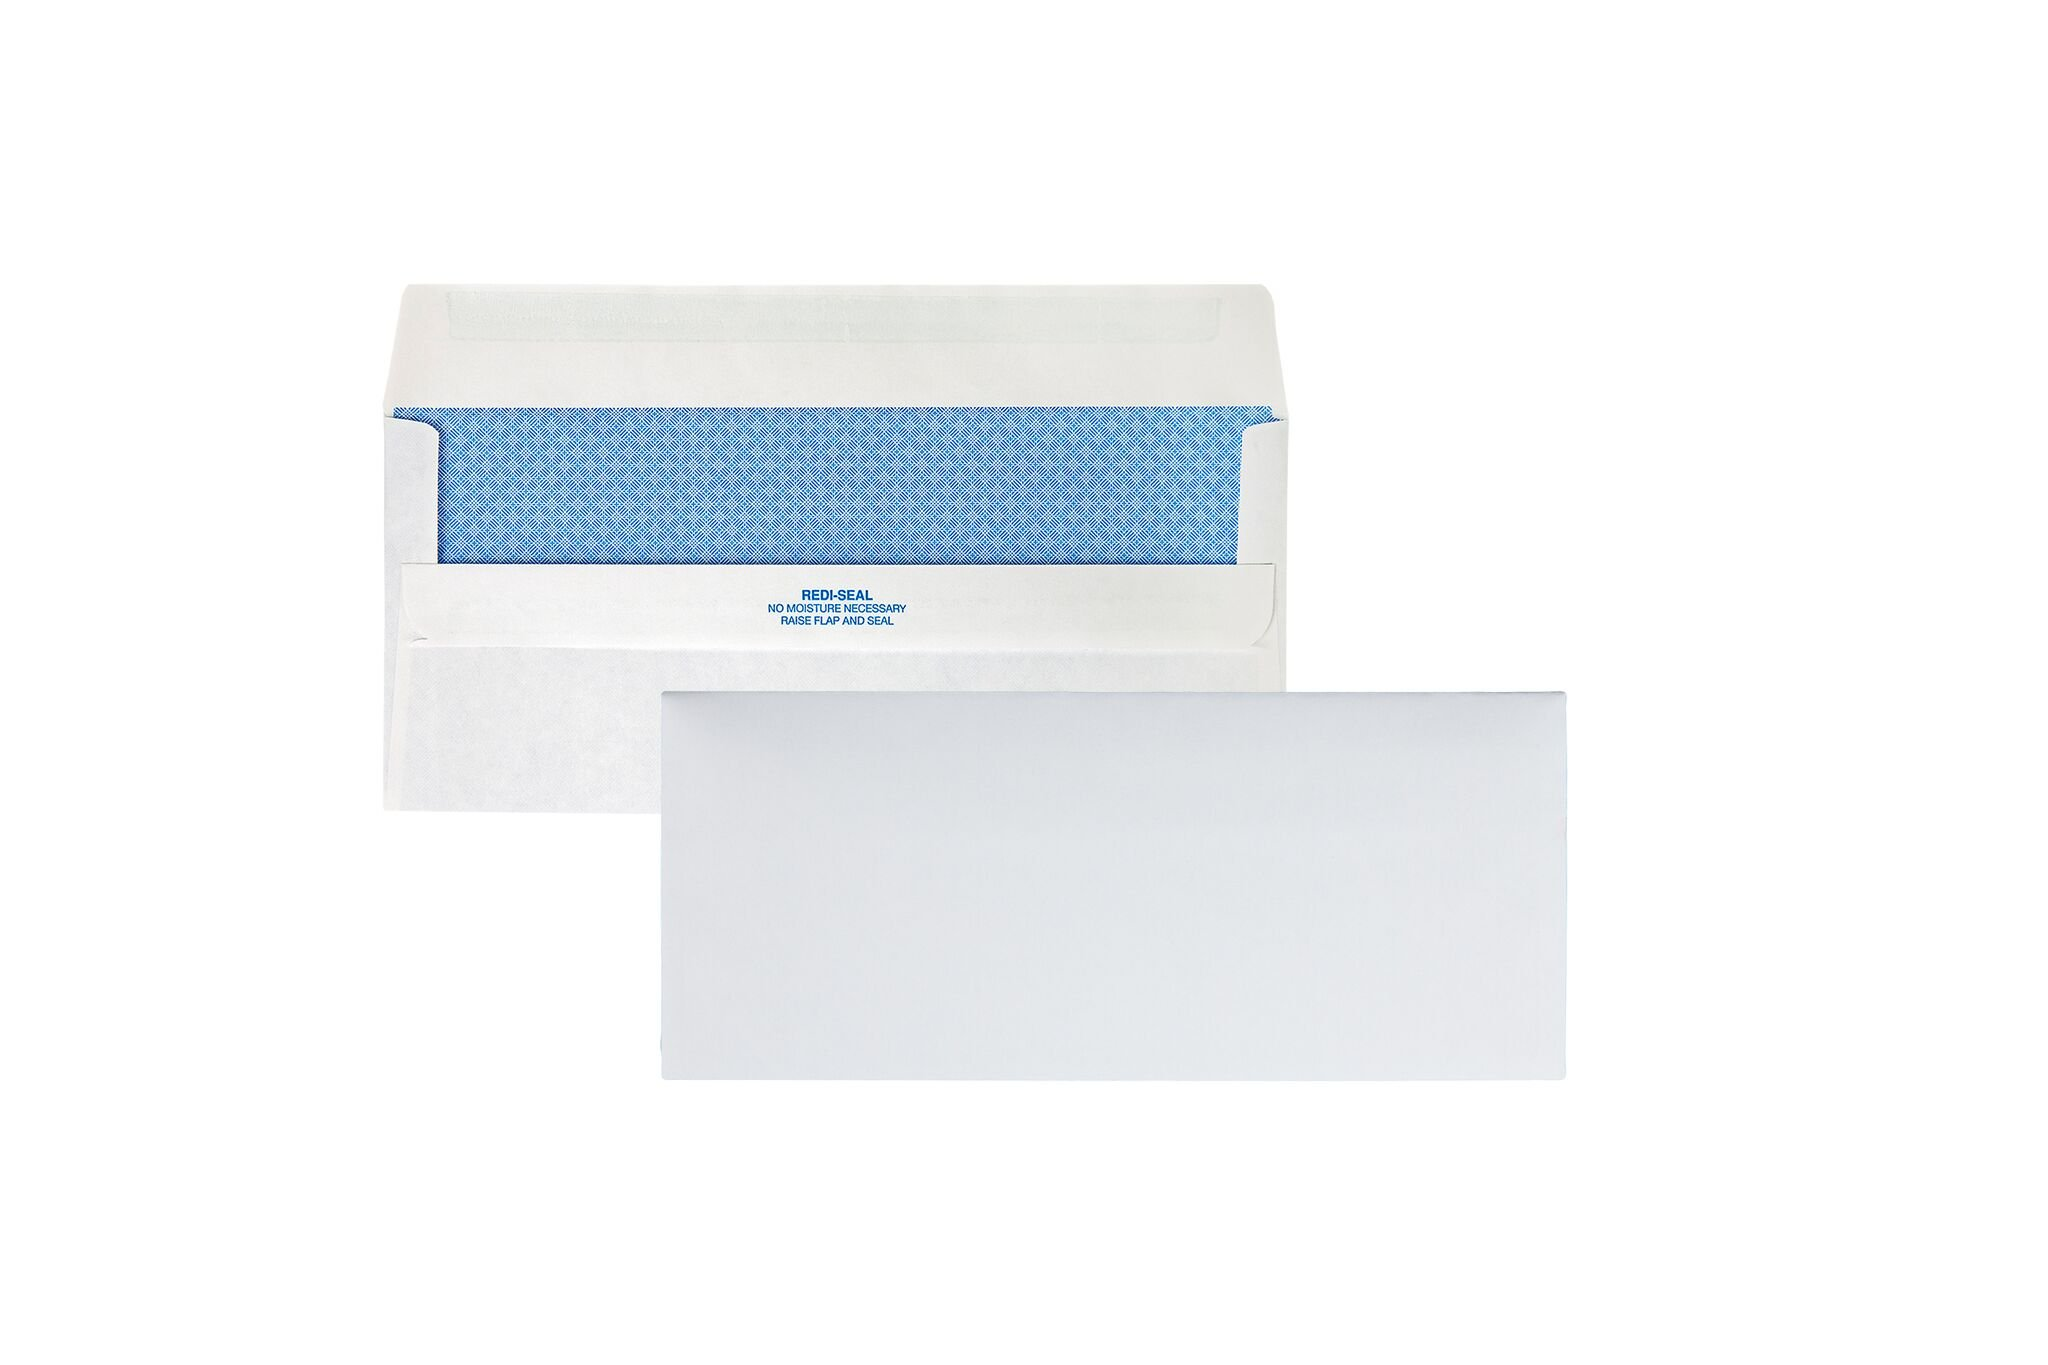 Quality Park Redi-Seal Security Tint Envelopes, 10, White, 500/Box (11218)